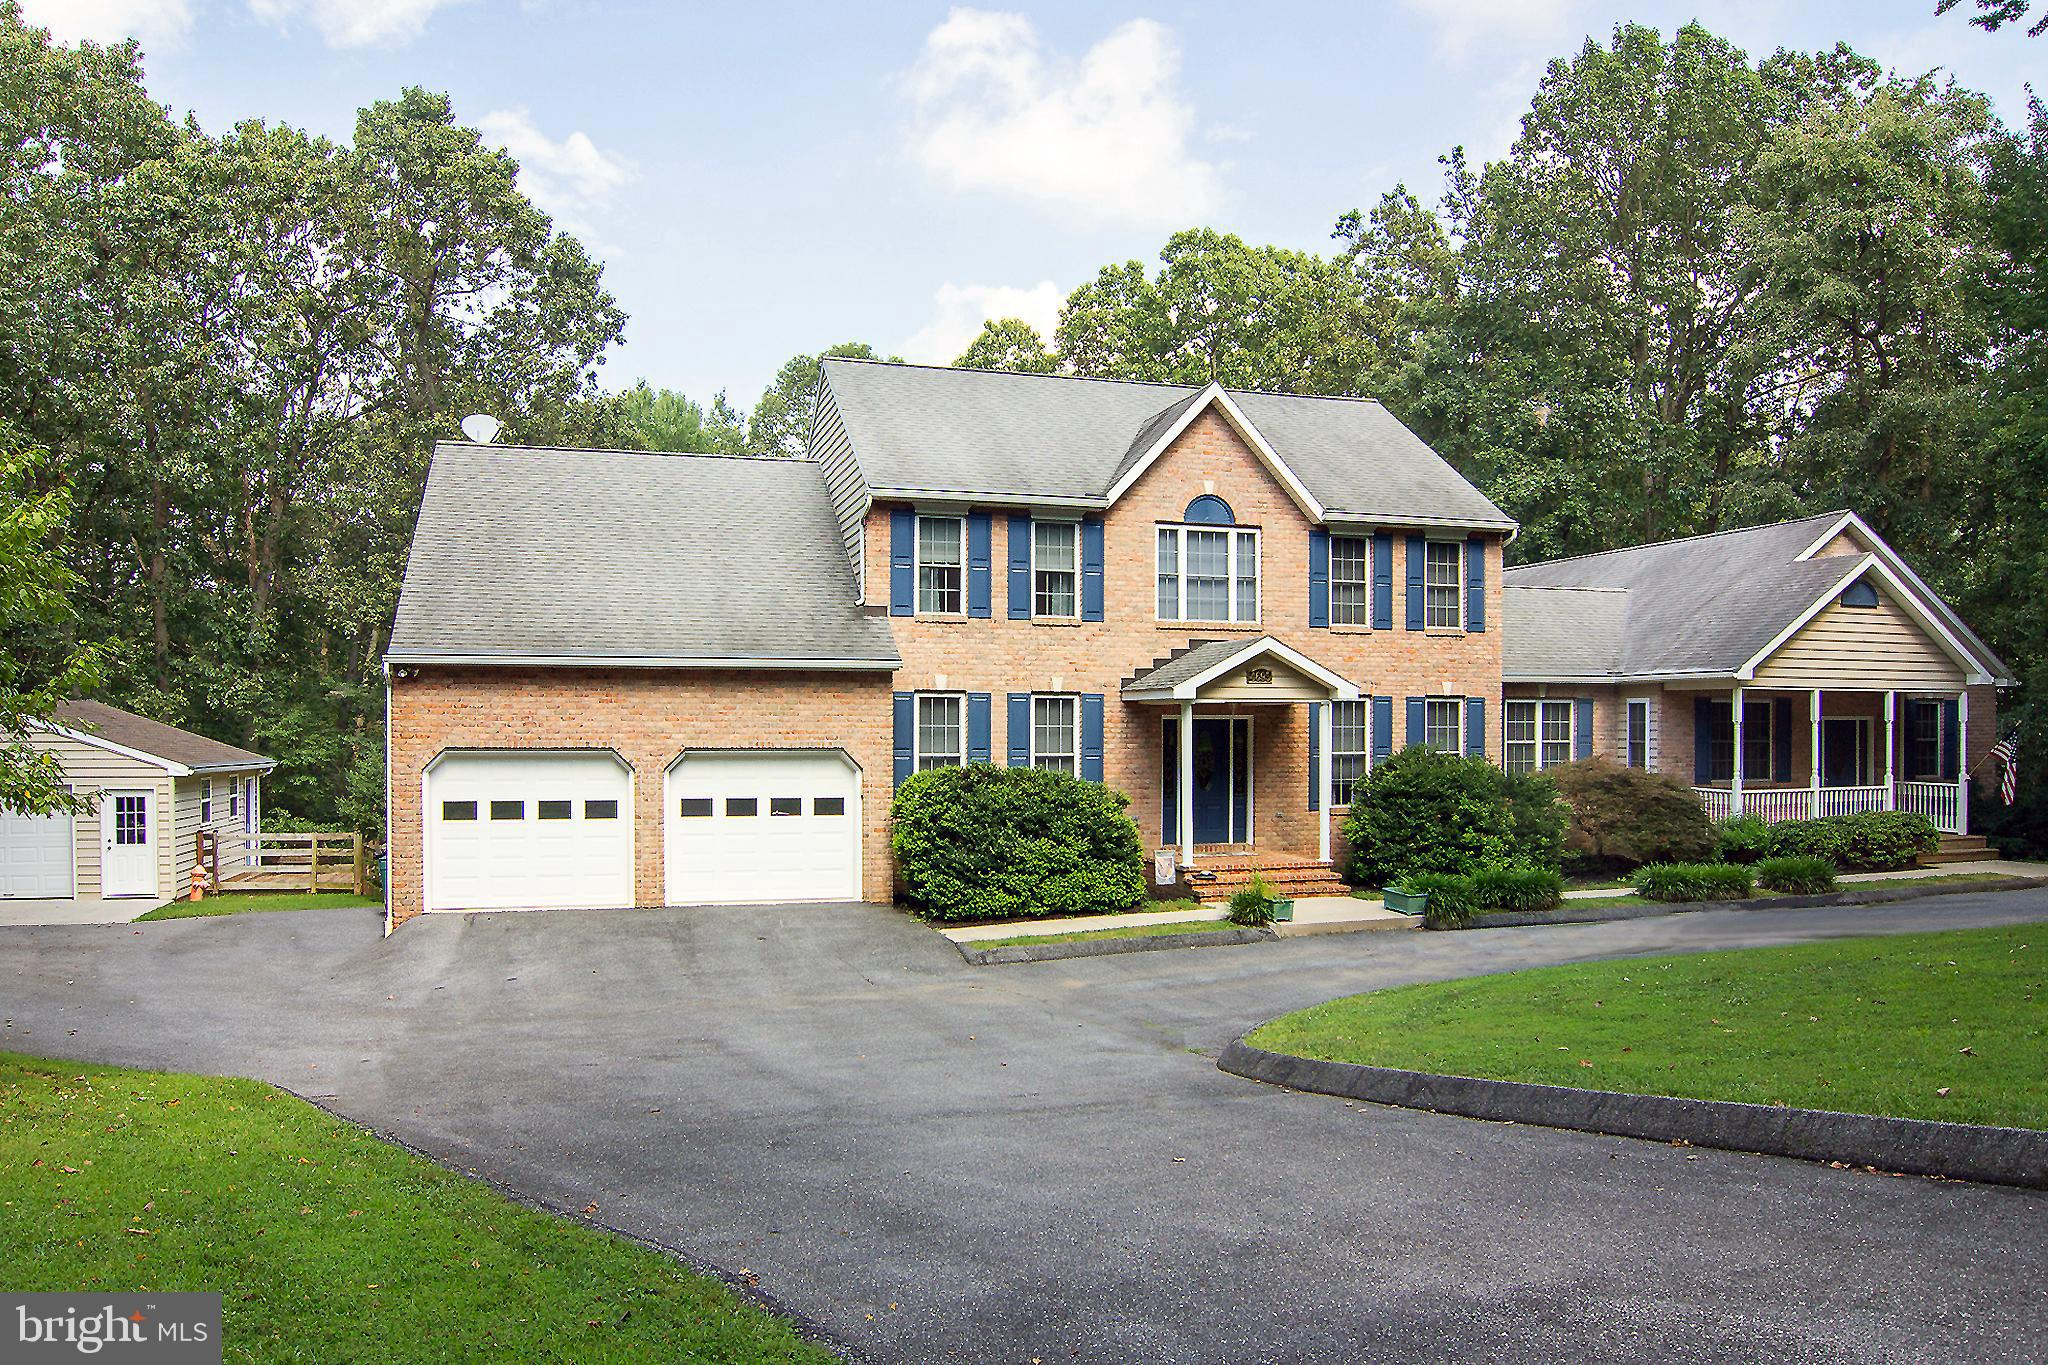 4695 EGG HILL DRIVE, MANCHESTER, MD 21102